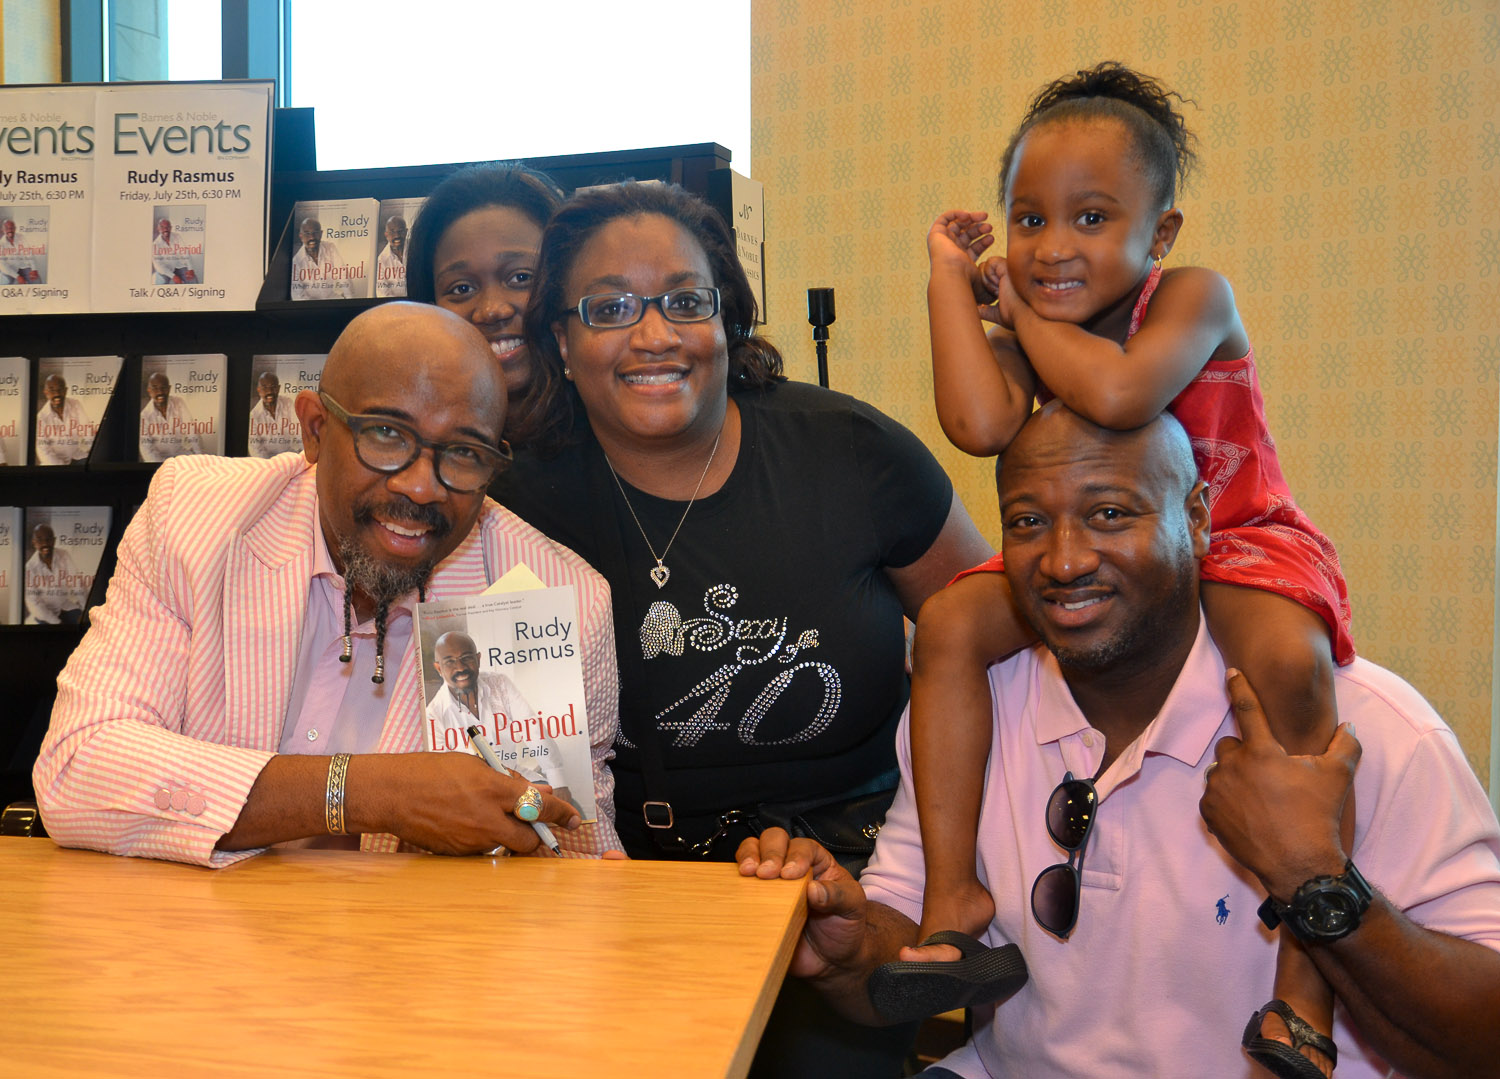 Paster Rudy book signing -0295.jpg